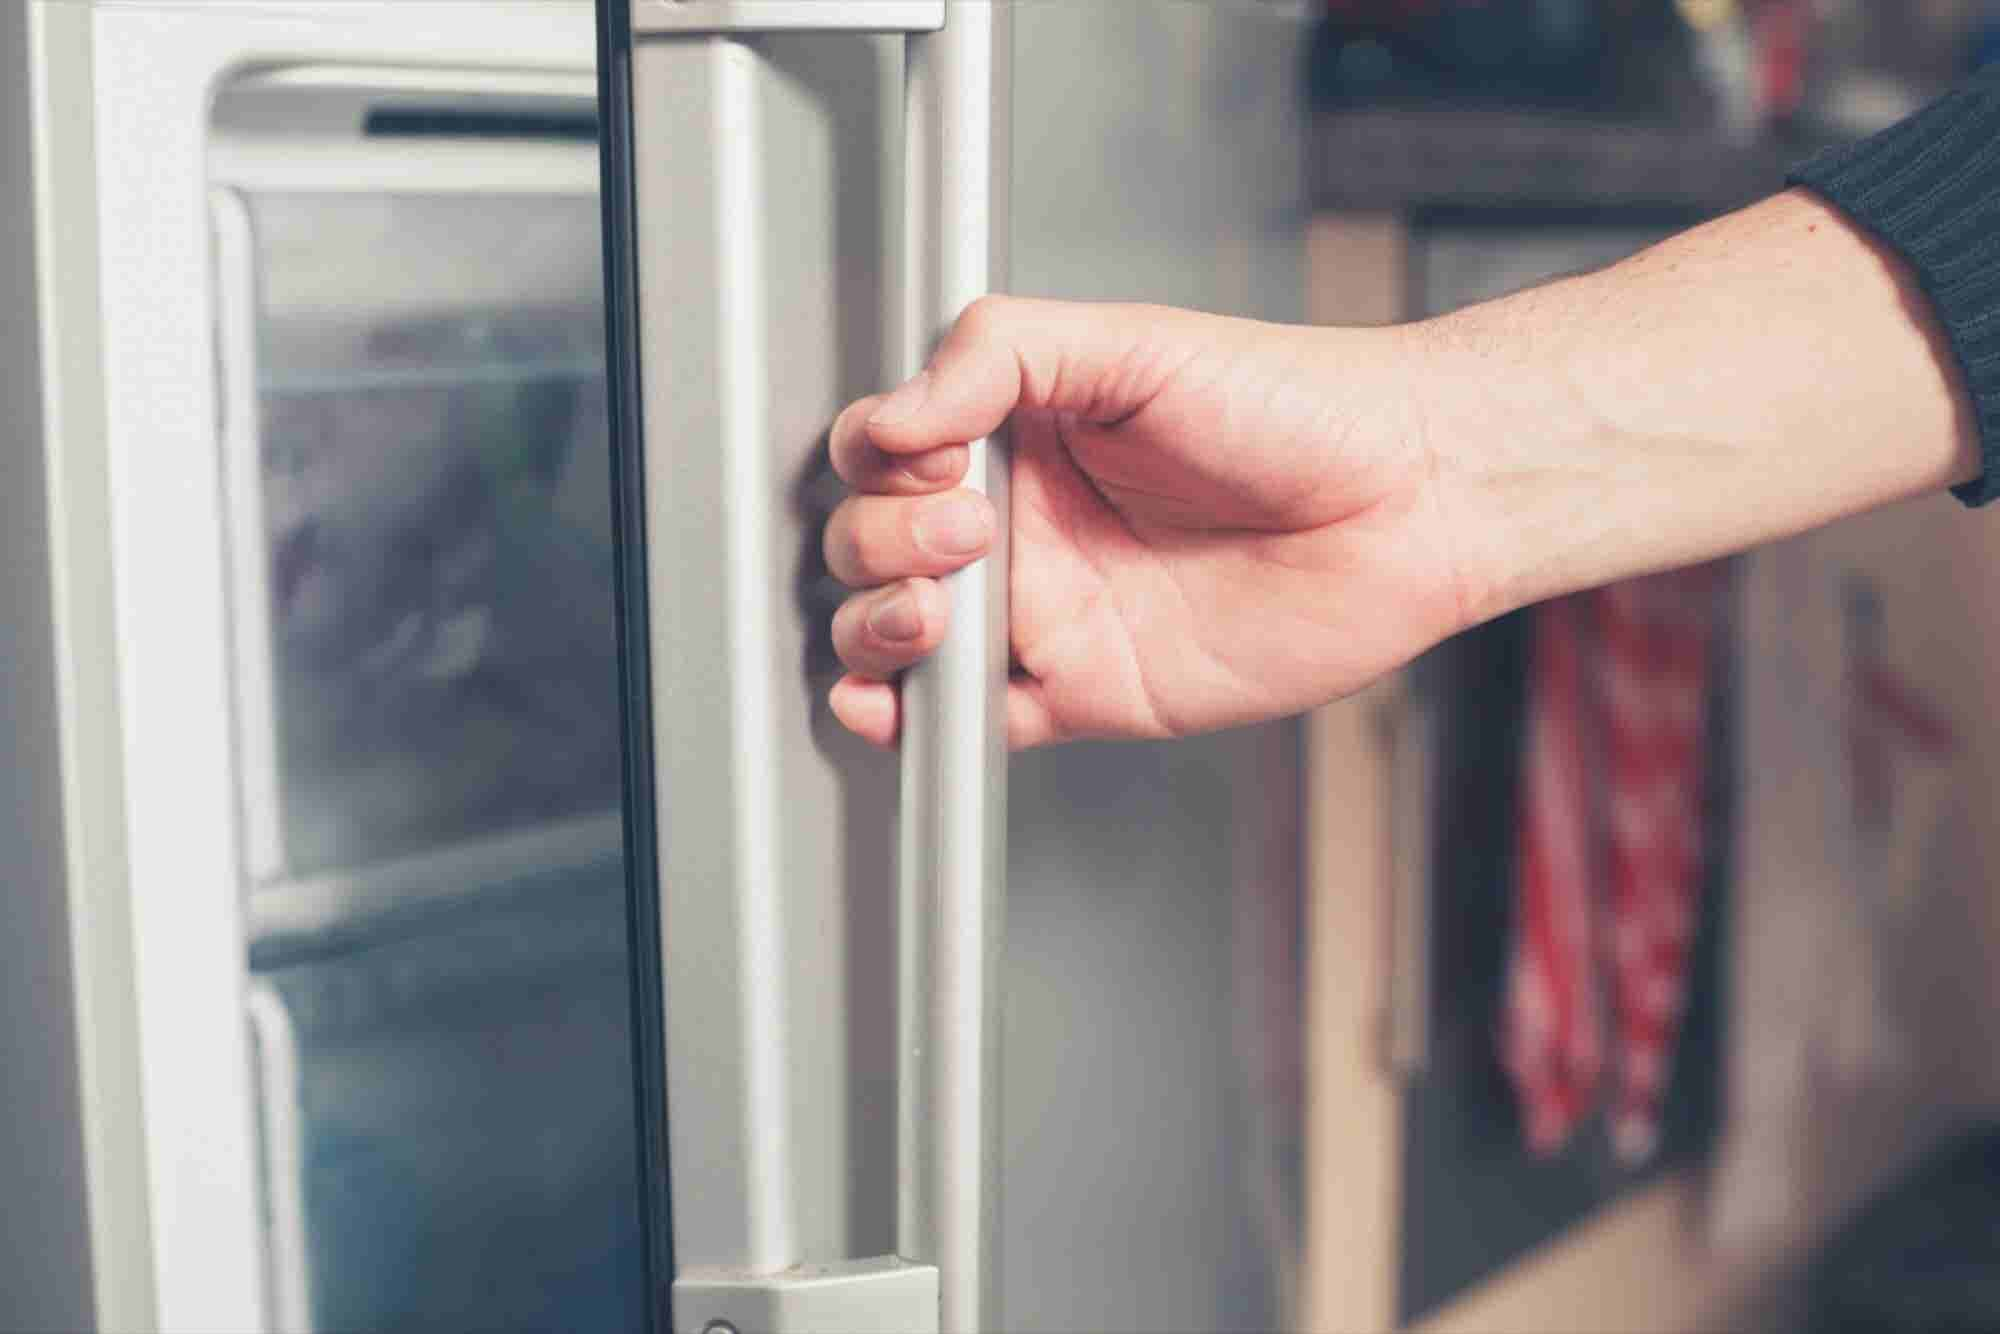 How a Refrigerator's Demise Illustrated 4 Steps to a Customer-Focused Brand